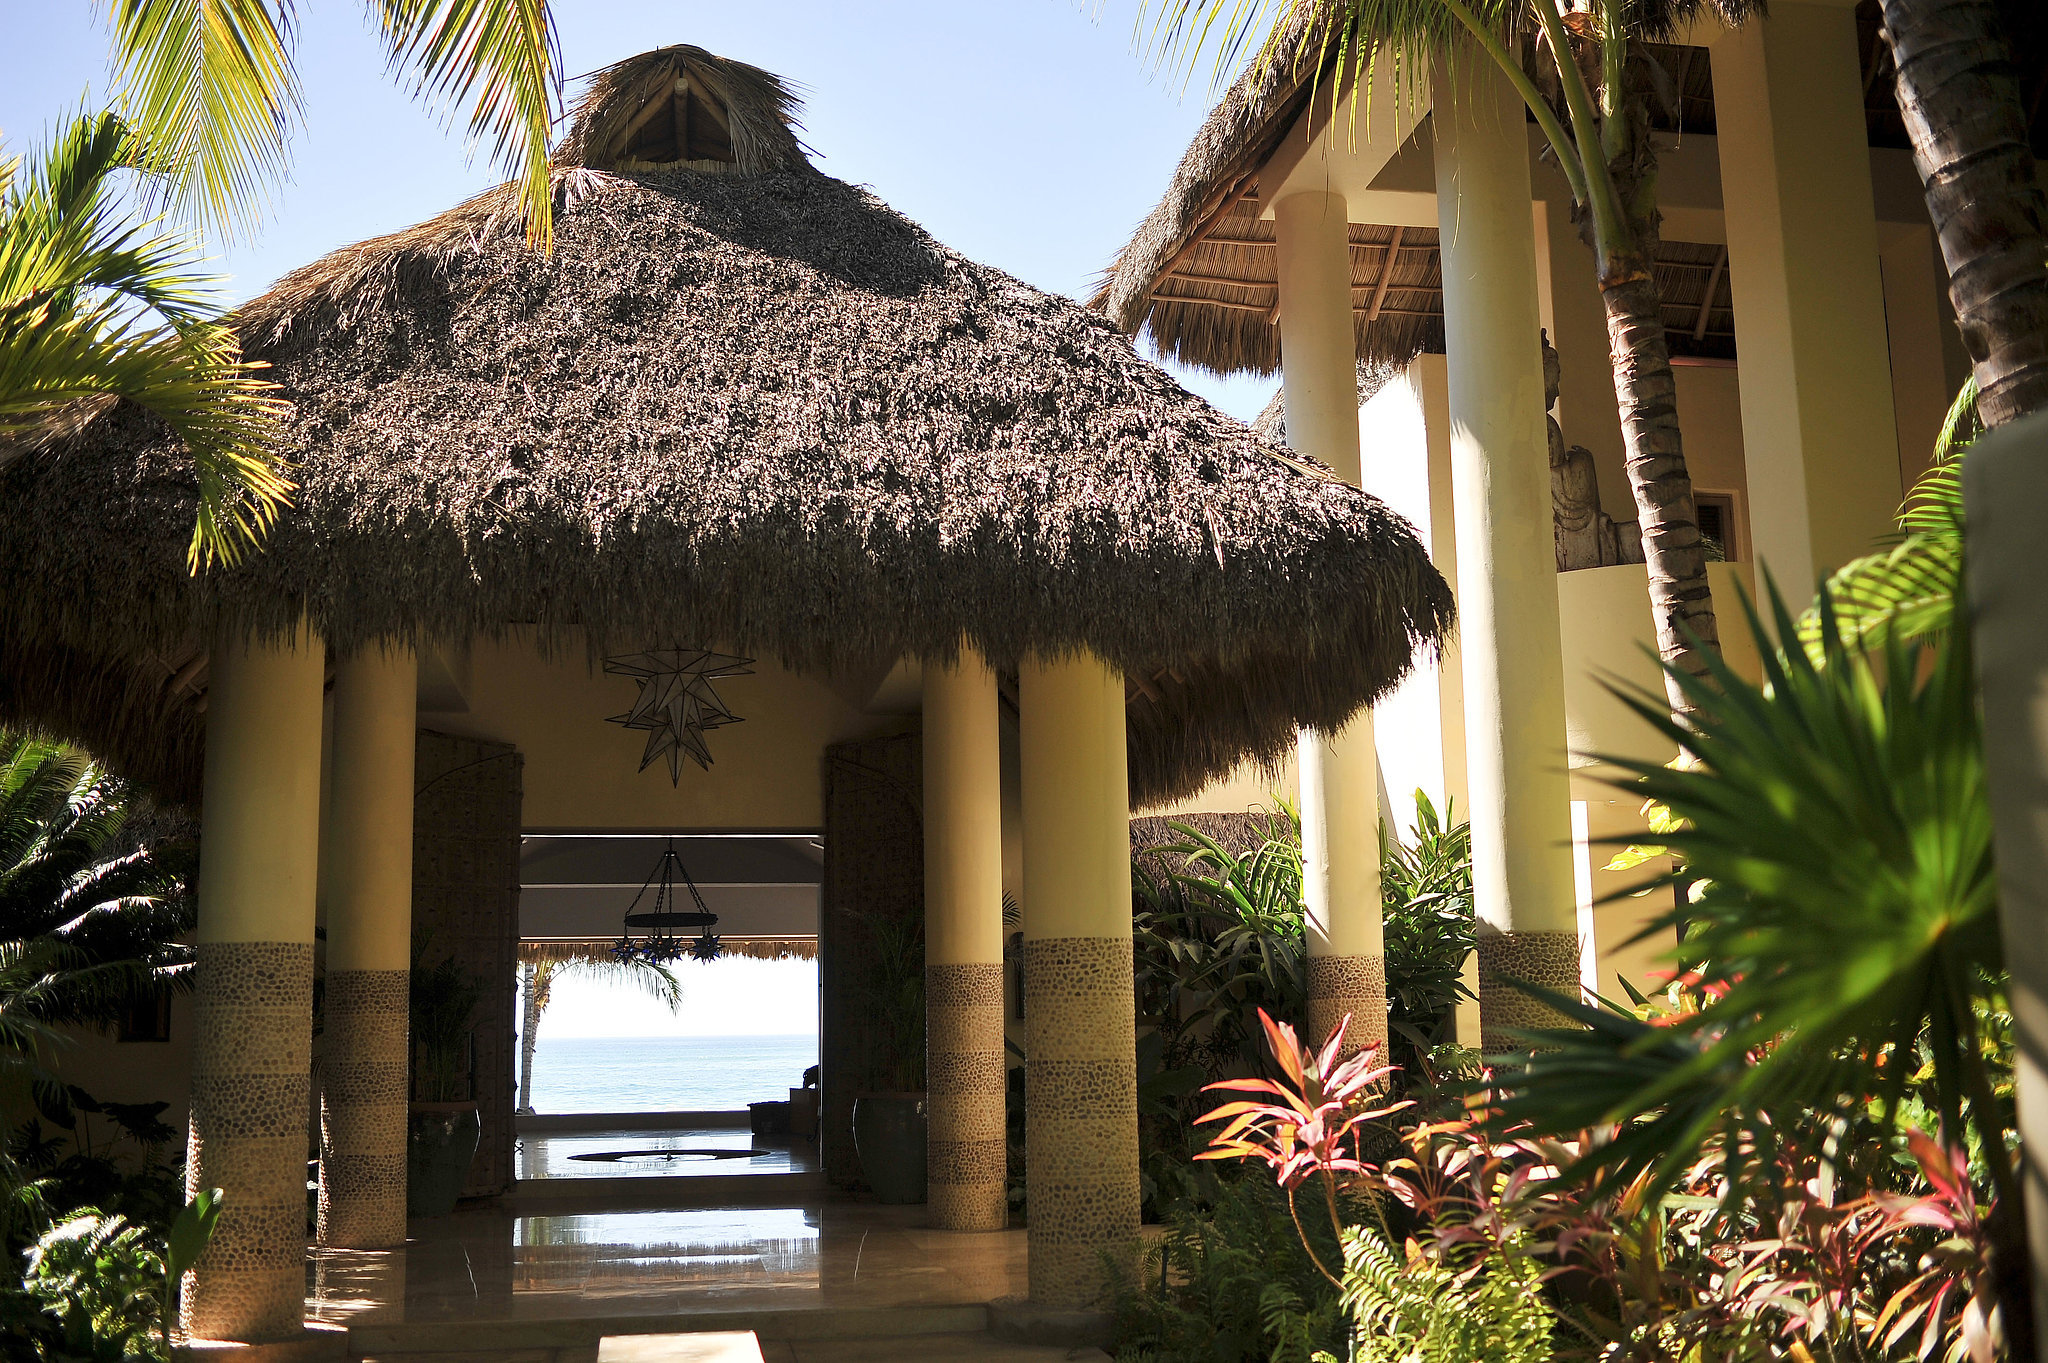 Ocean views and a traditional grass roof make quite the entrance.